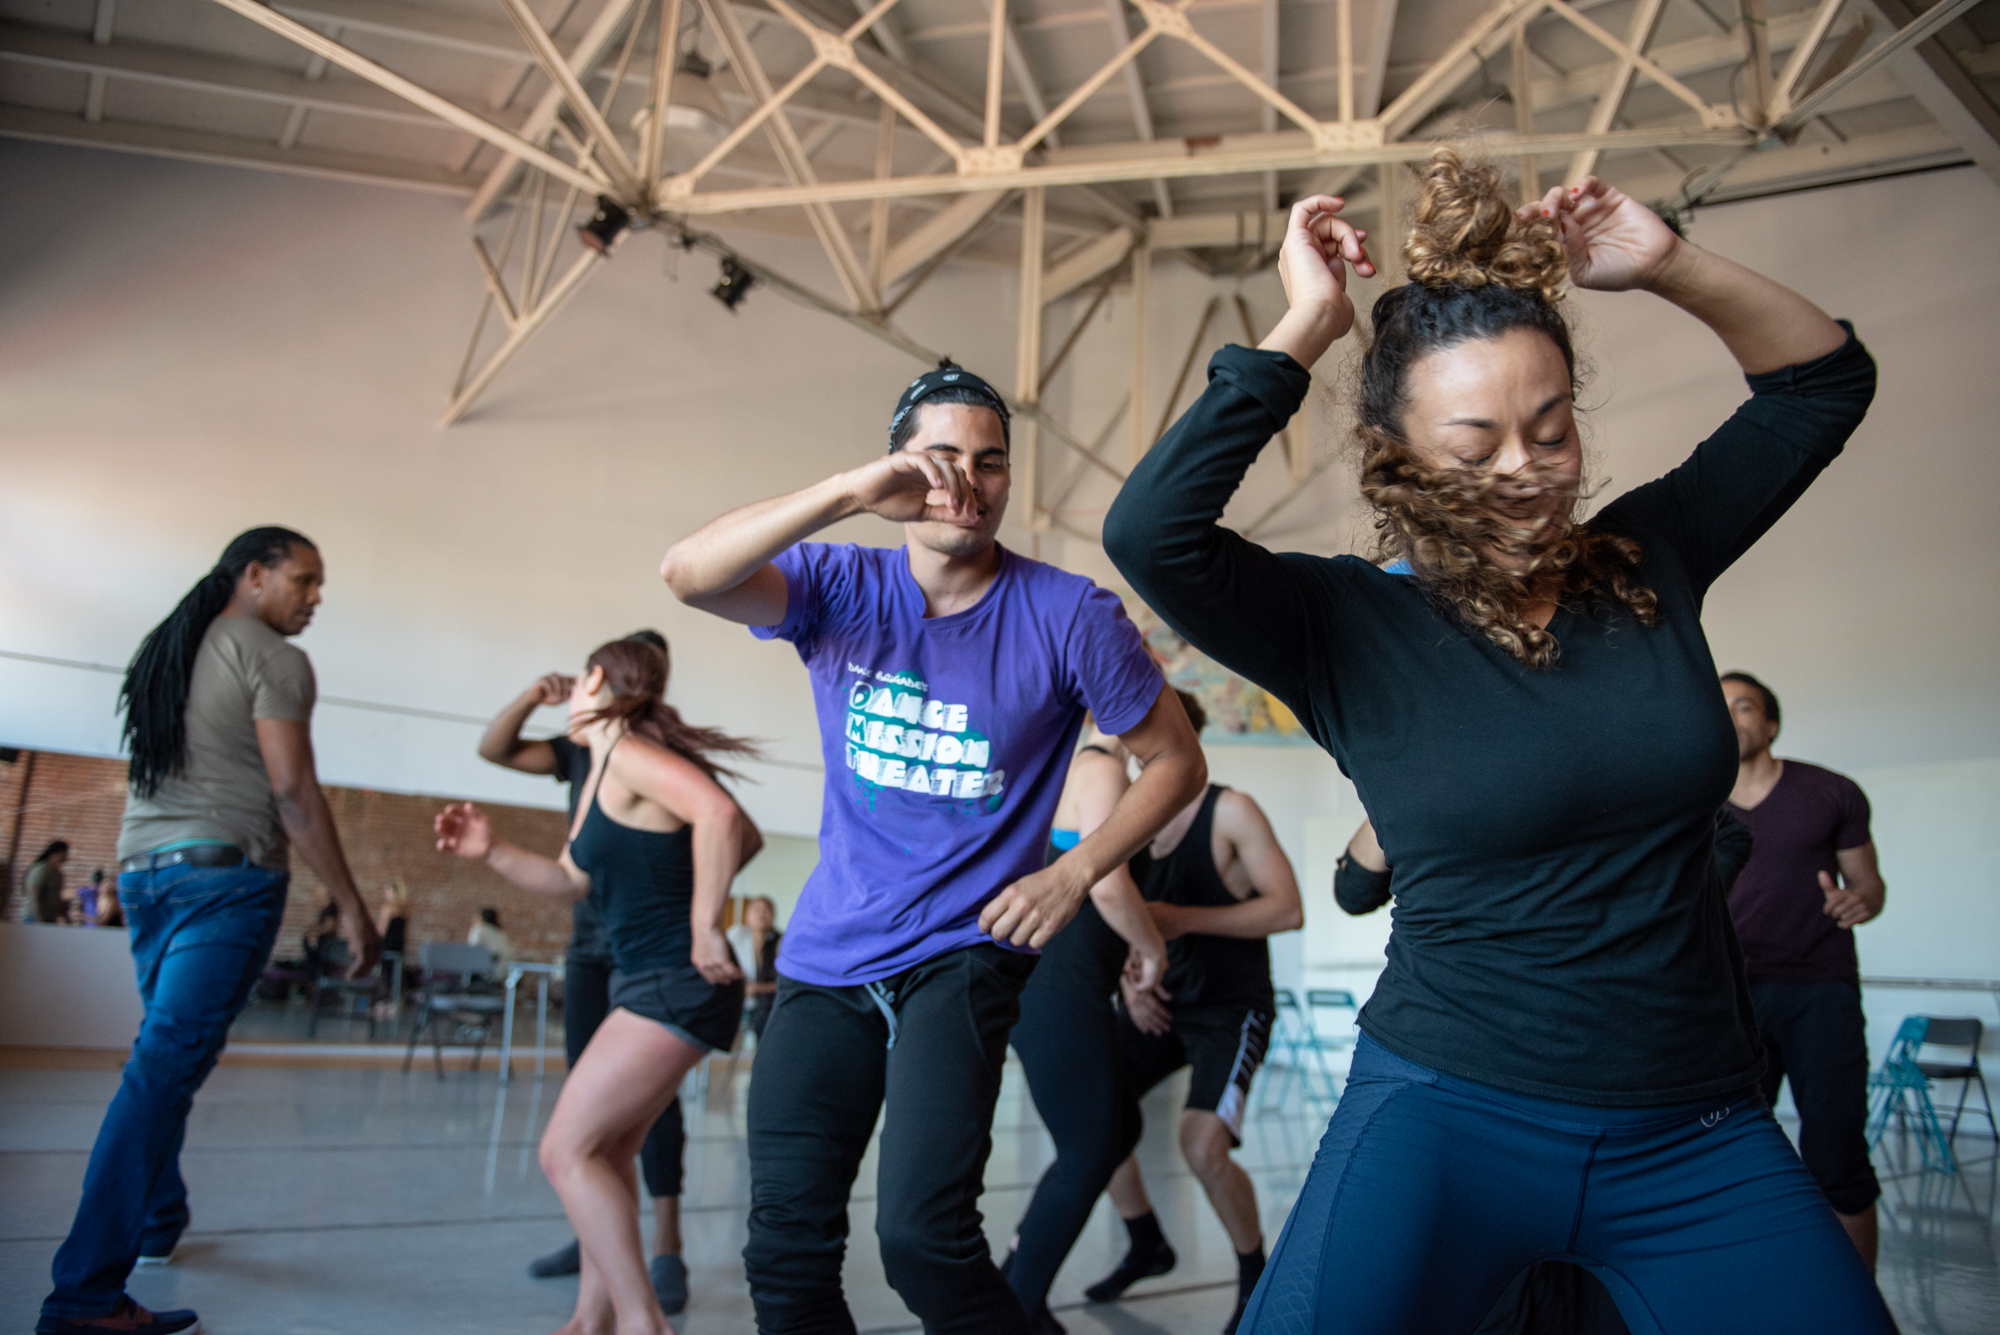 Dancers Adonis Martin Quiñones (center wearing purple shirt) and Jillian Miller (right) dance a rumba with other members of the Alayo Dance Company, as artistic director Ramon Ramos Alayo looks on, during a rehearsal for the upcoming Cuba Caribe Festival, in San Francisco on Friday, June 1, 2018. | Rosa Furneaux, Special To The Chronicle